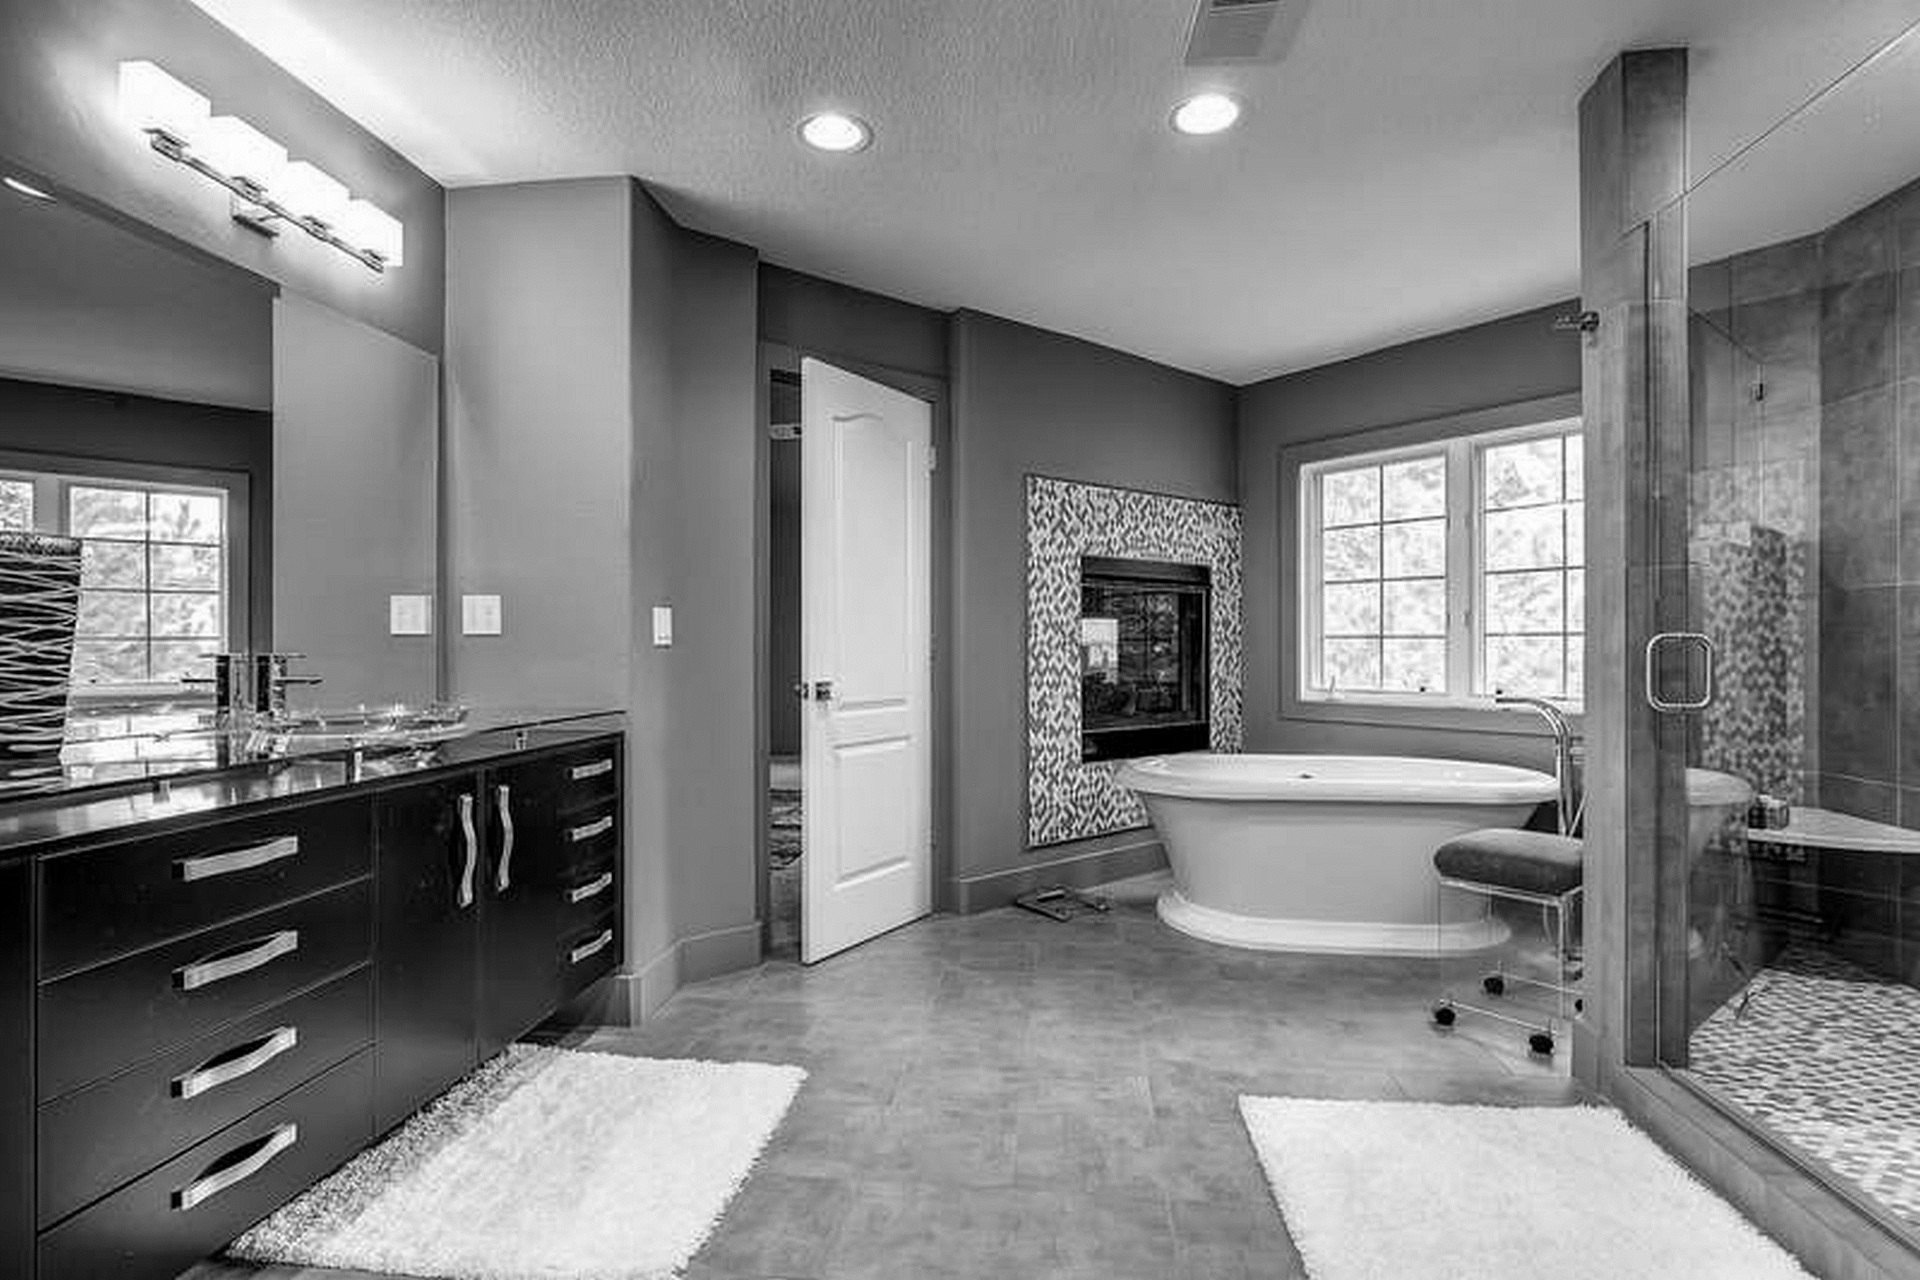 black white and silver bathroom ideas top 15 amazing diy bathroom design and remodel ideas home improvement advice by remodelgurus com 3288